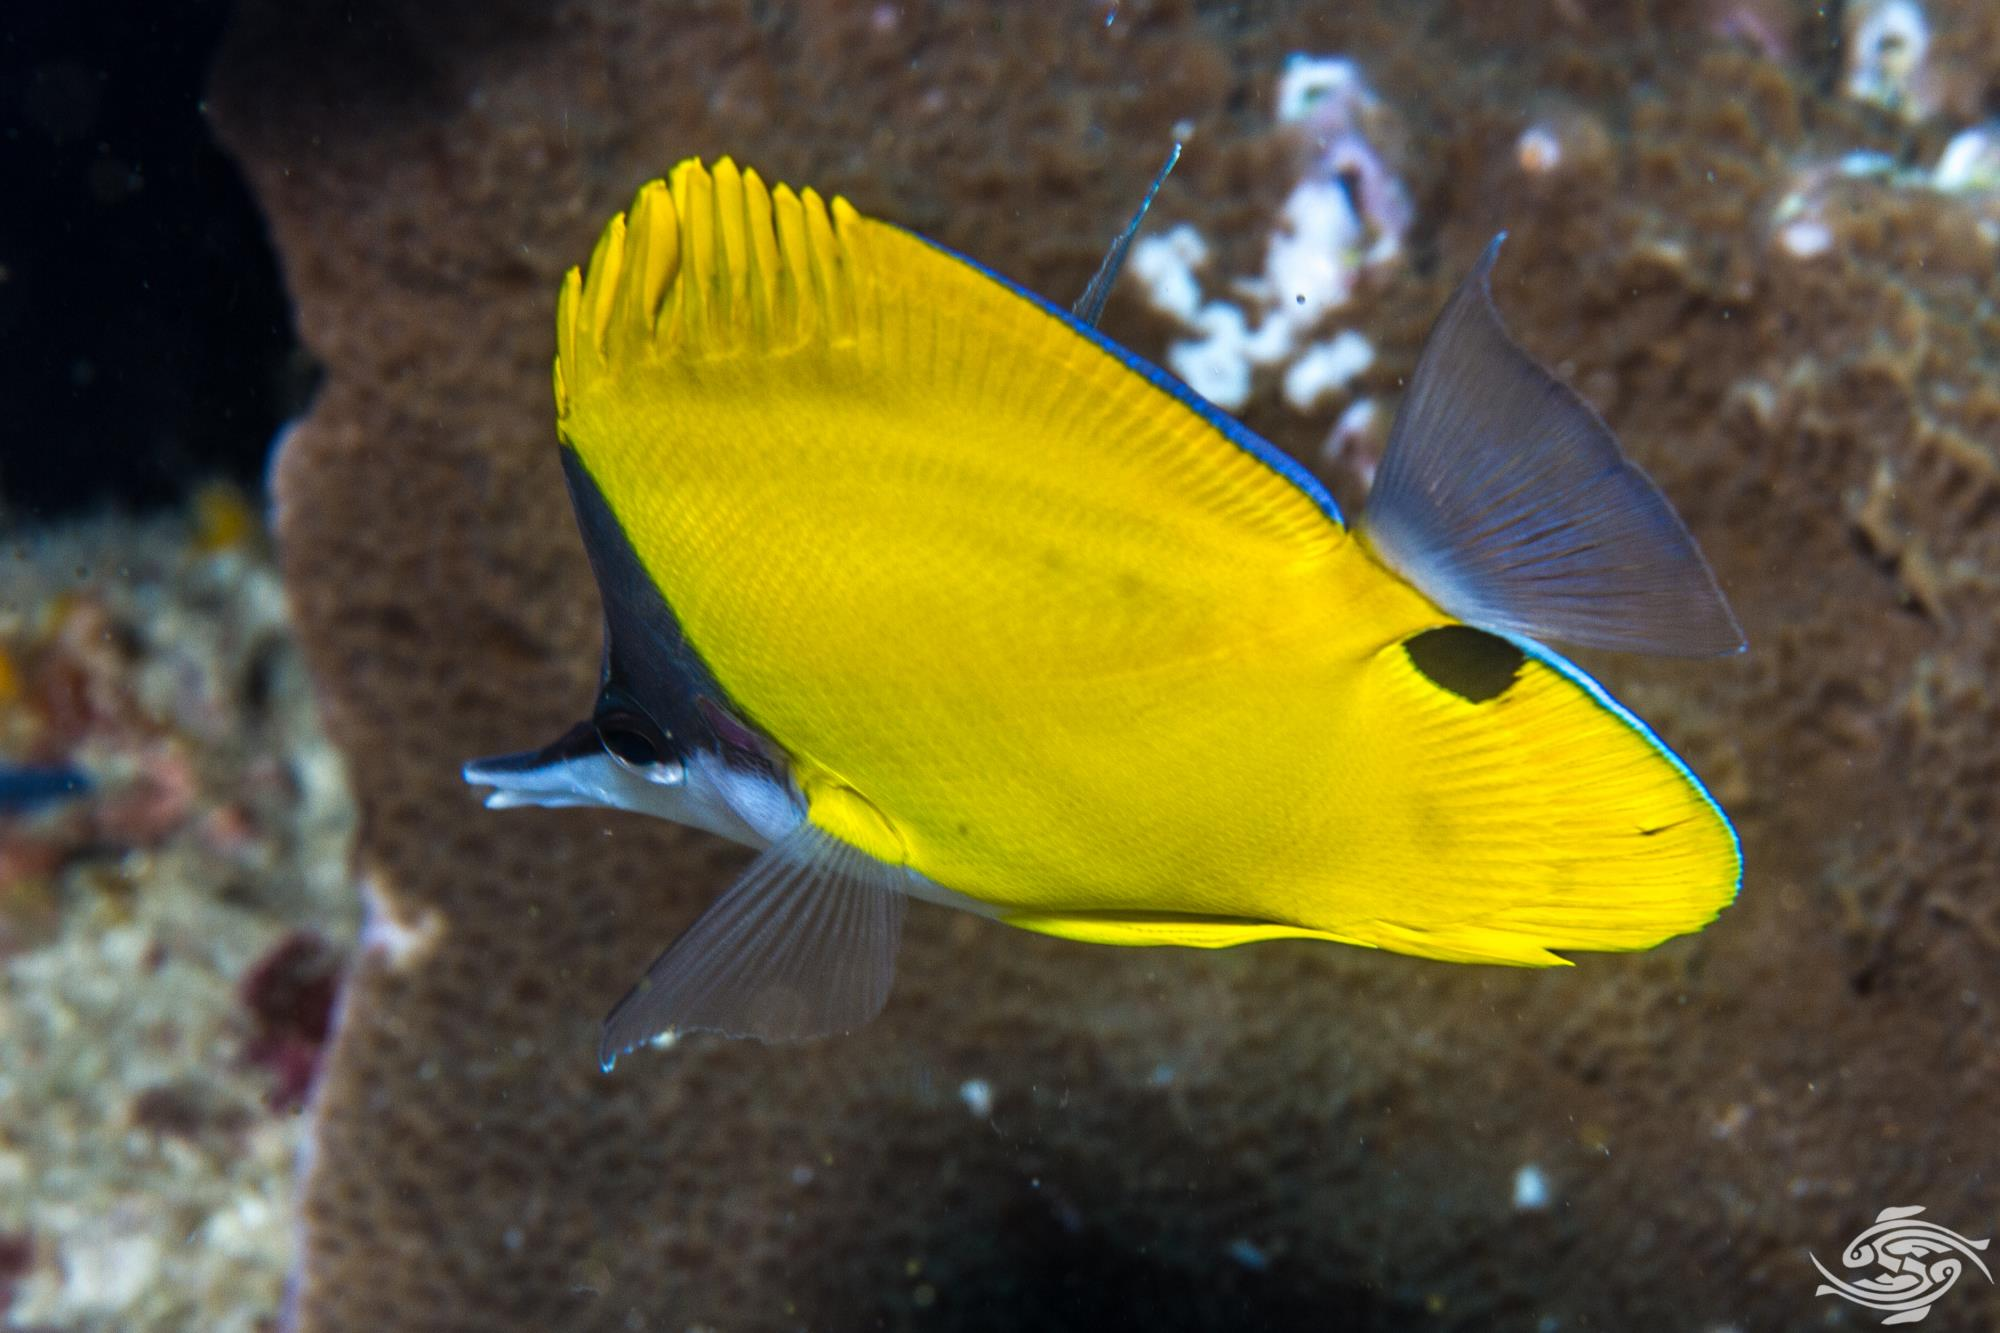 yellow longnose butterflyfish Forcipiger flavissimus, also known as the forceps butterflyfish